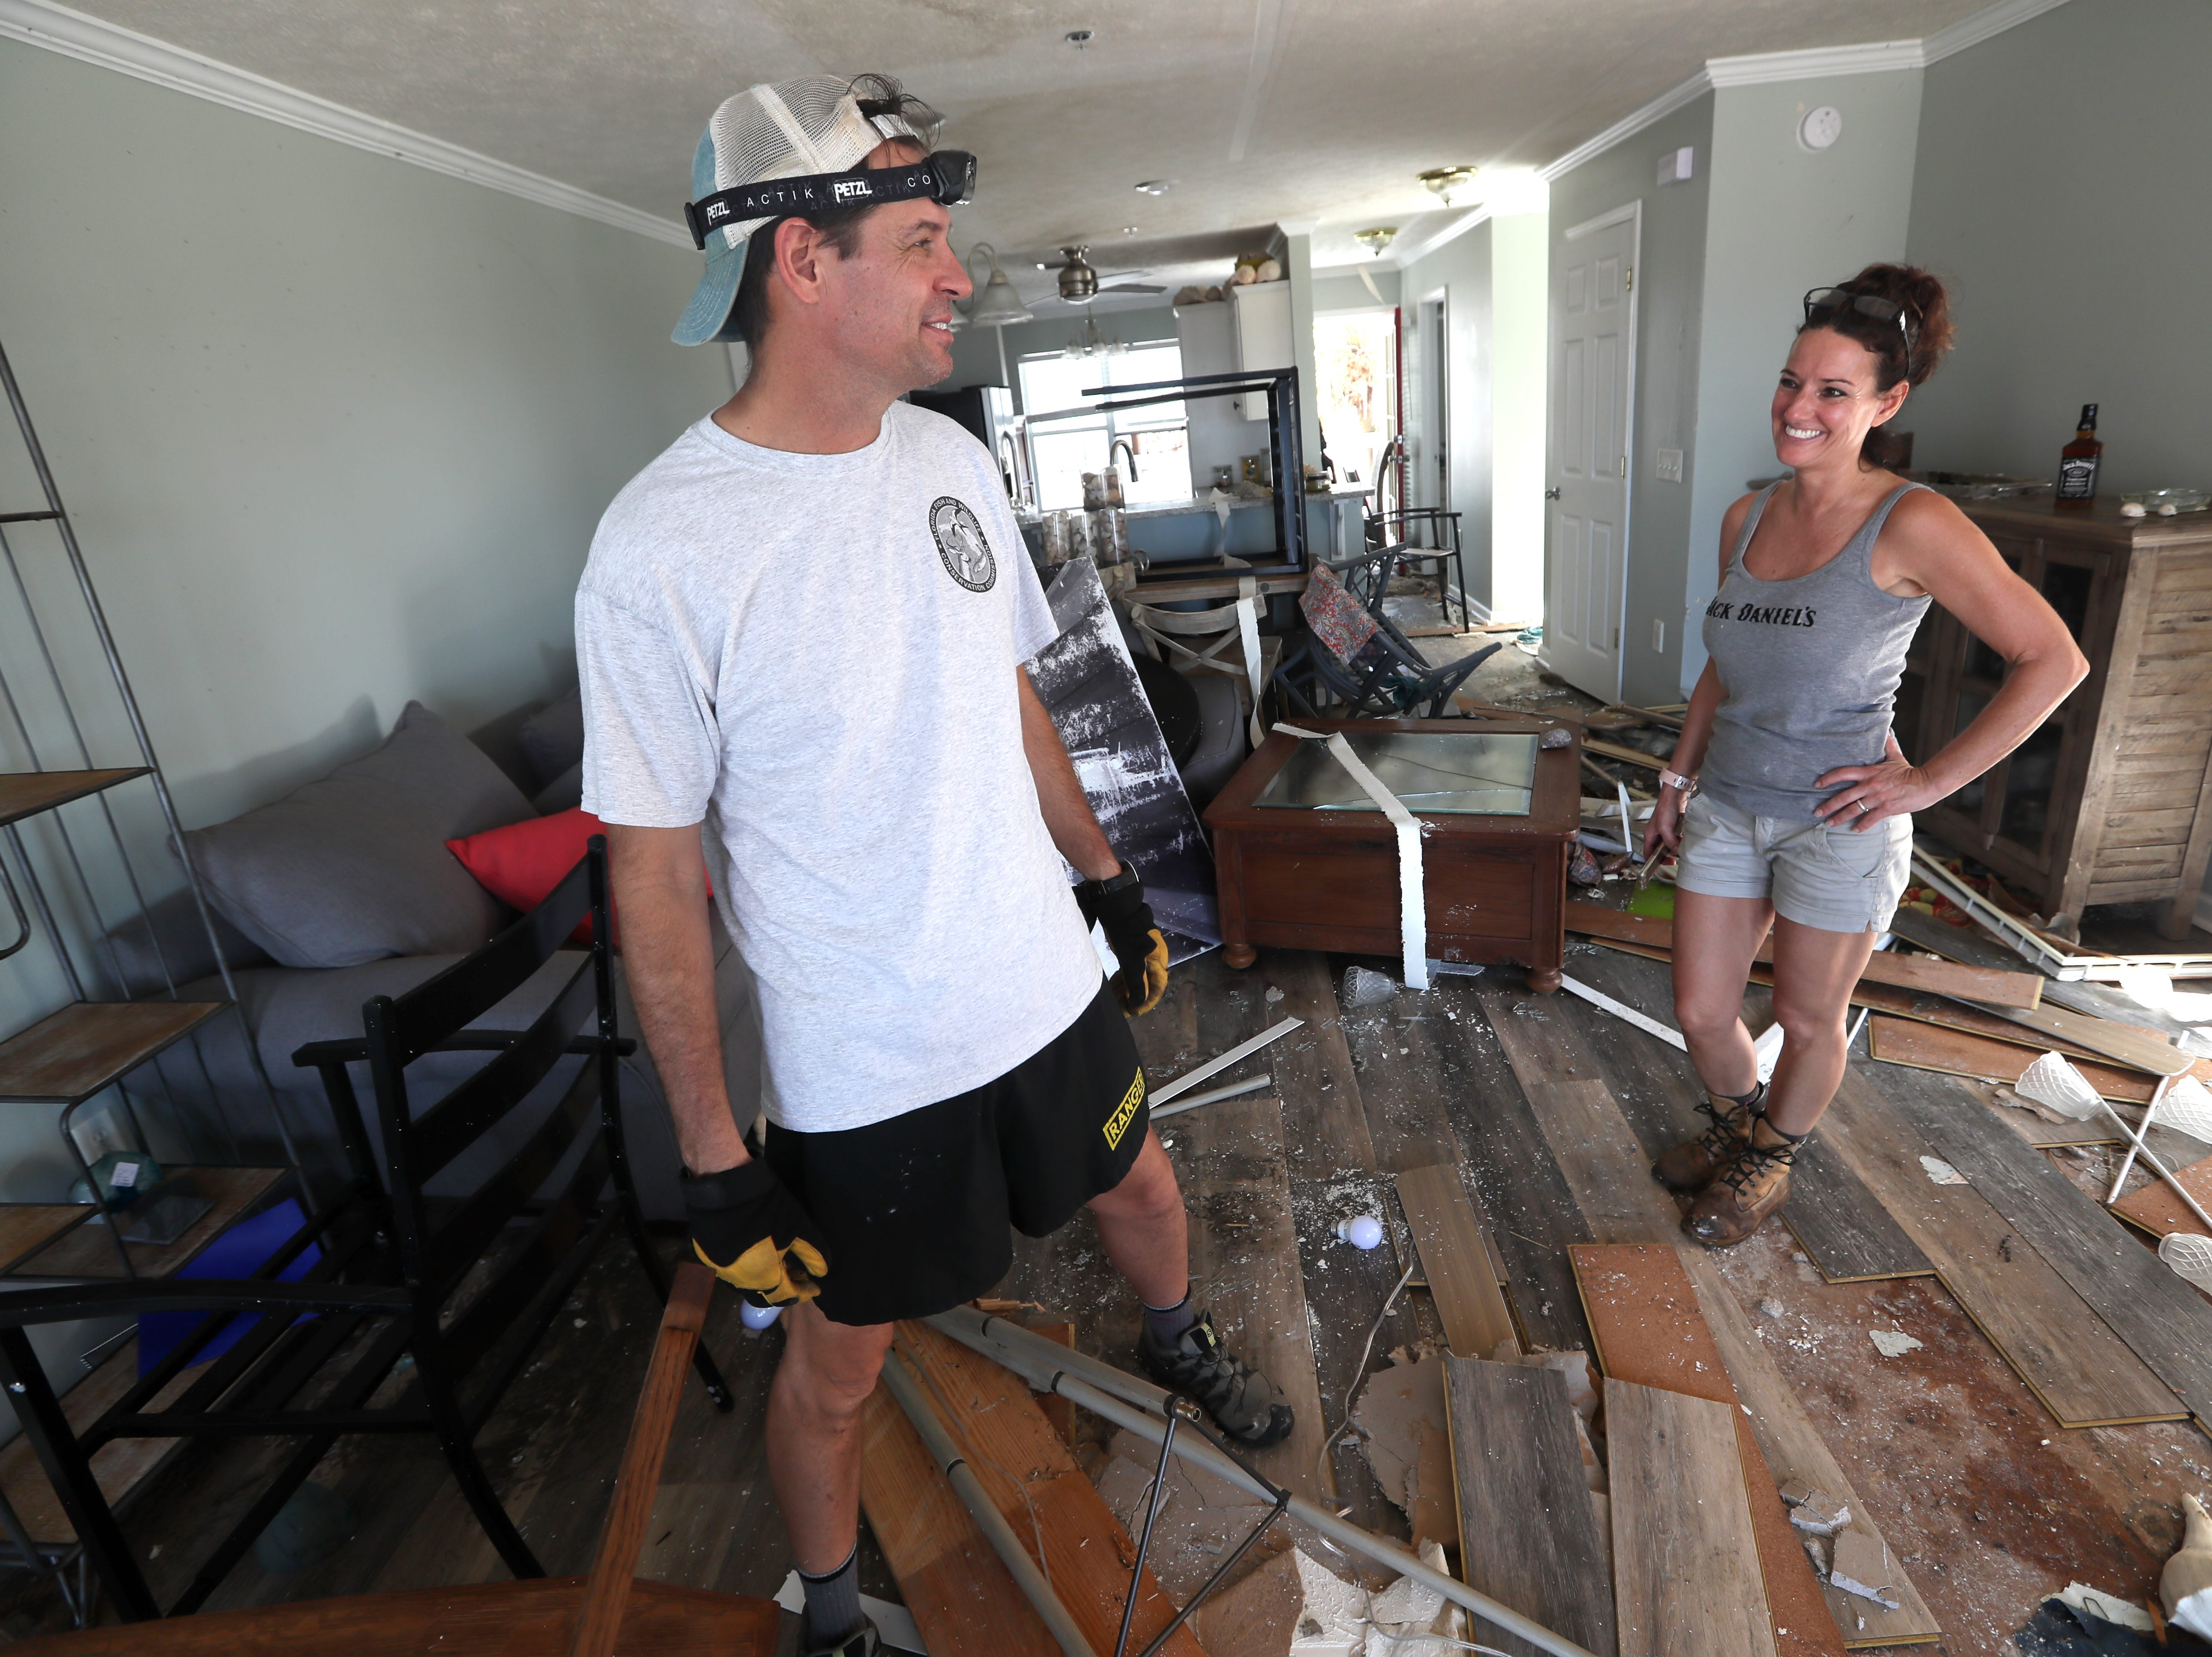 Brian Higdon shares a laugh with wife Kimberly during a lighter moment as they stand in their Mexico Beach condo on Wednesday, Oct. 17, 2018, one week after Hurricane Michael ripped through the coastal Florida town.